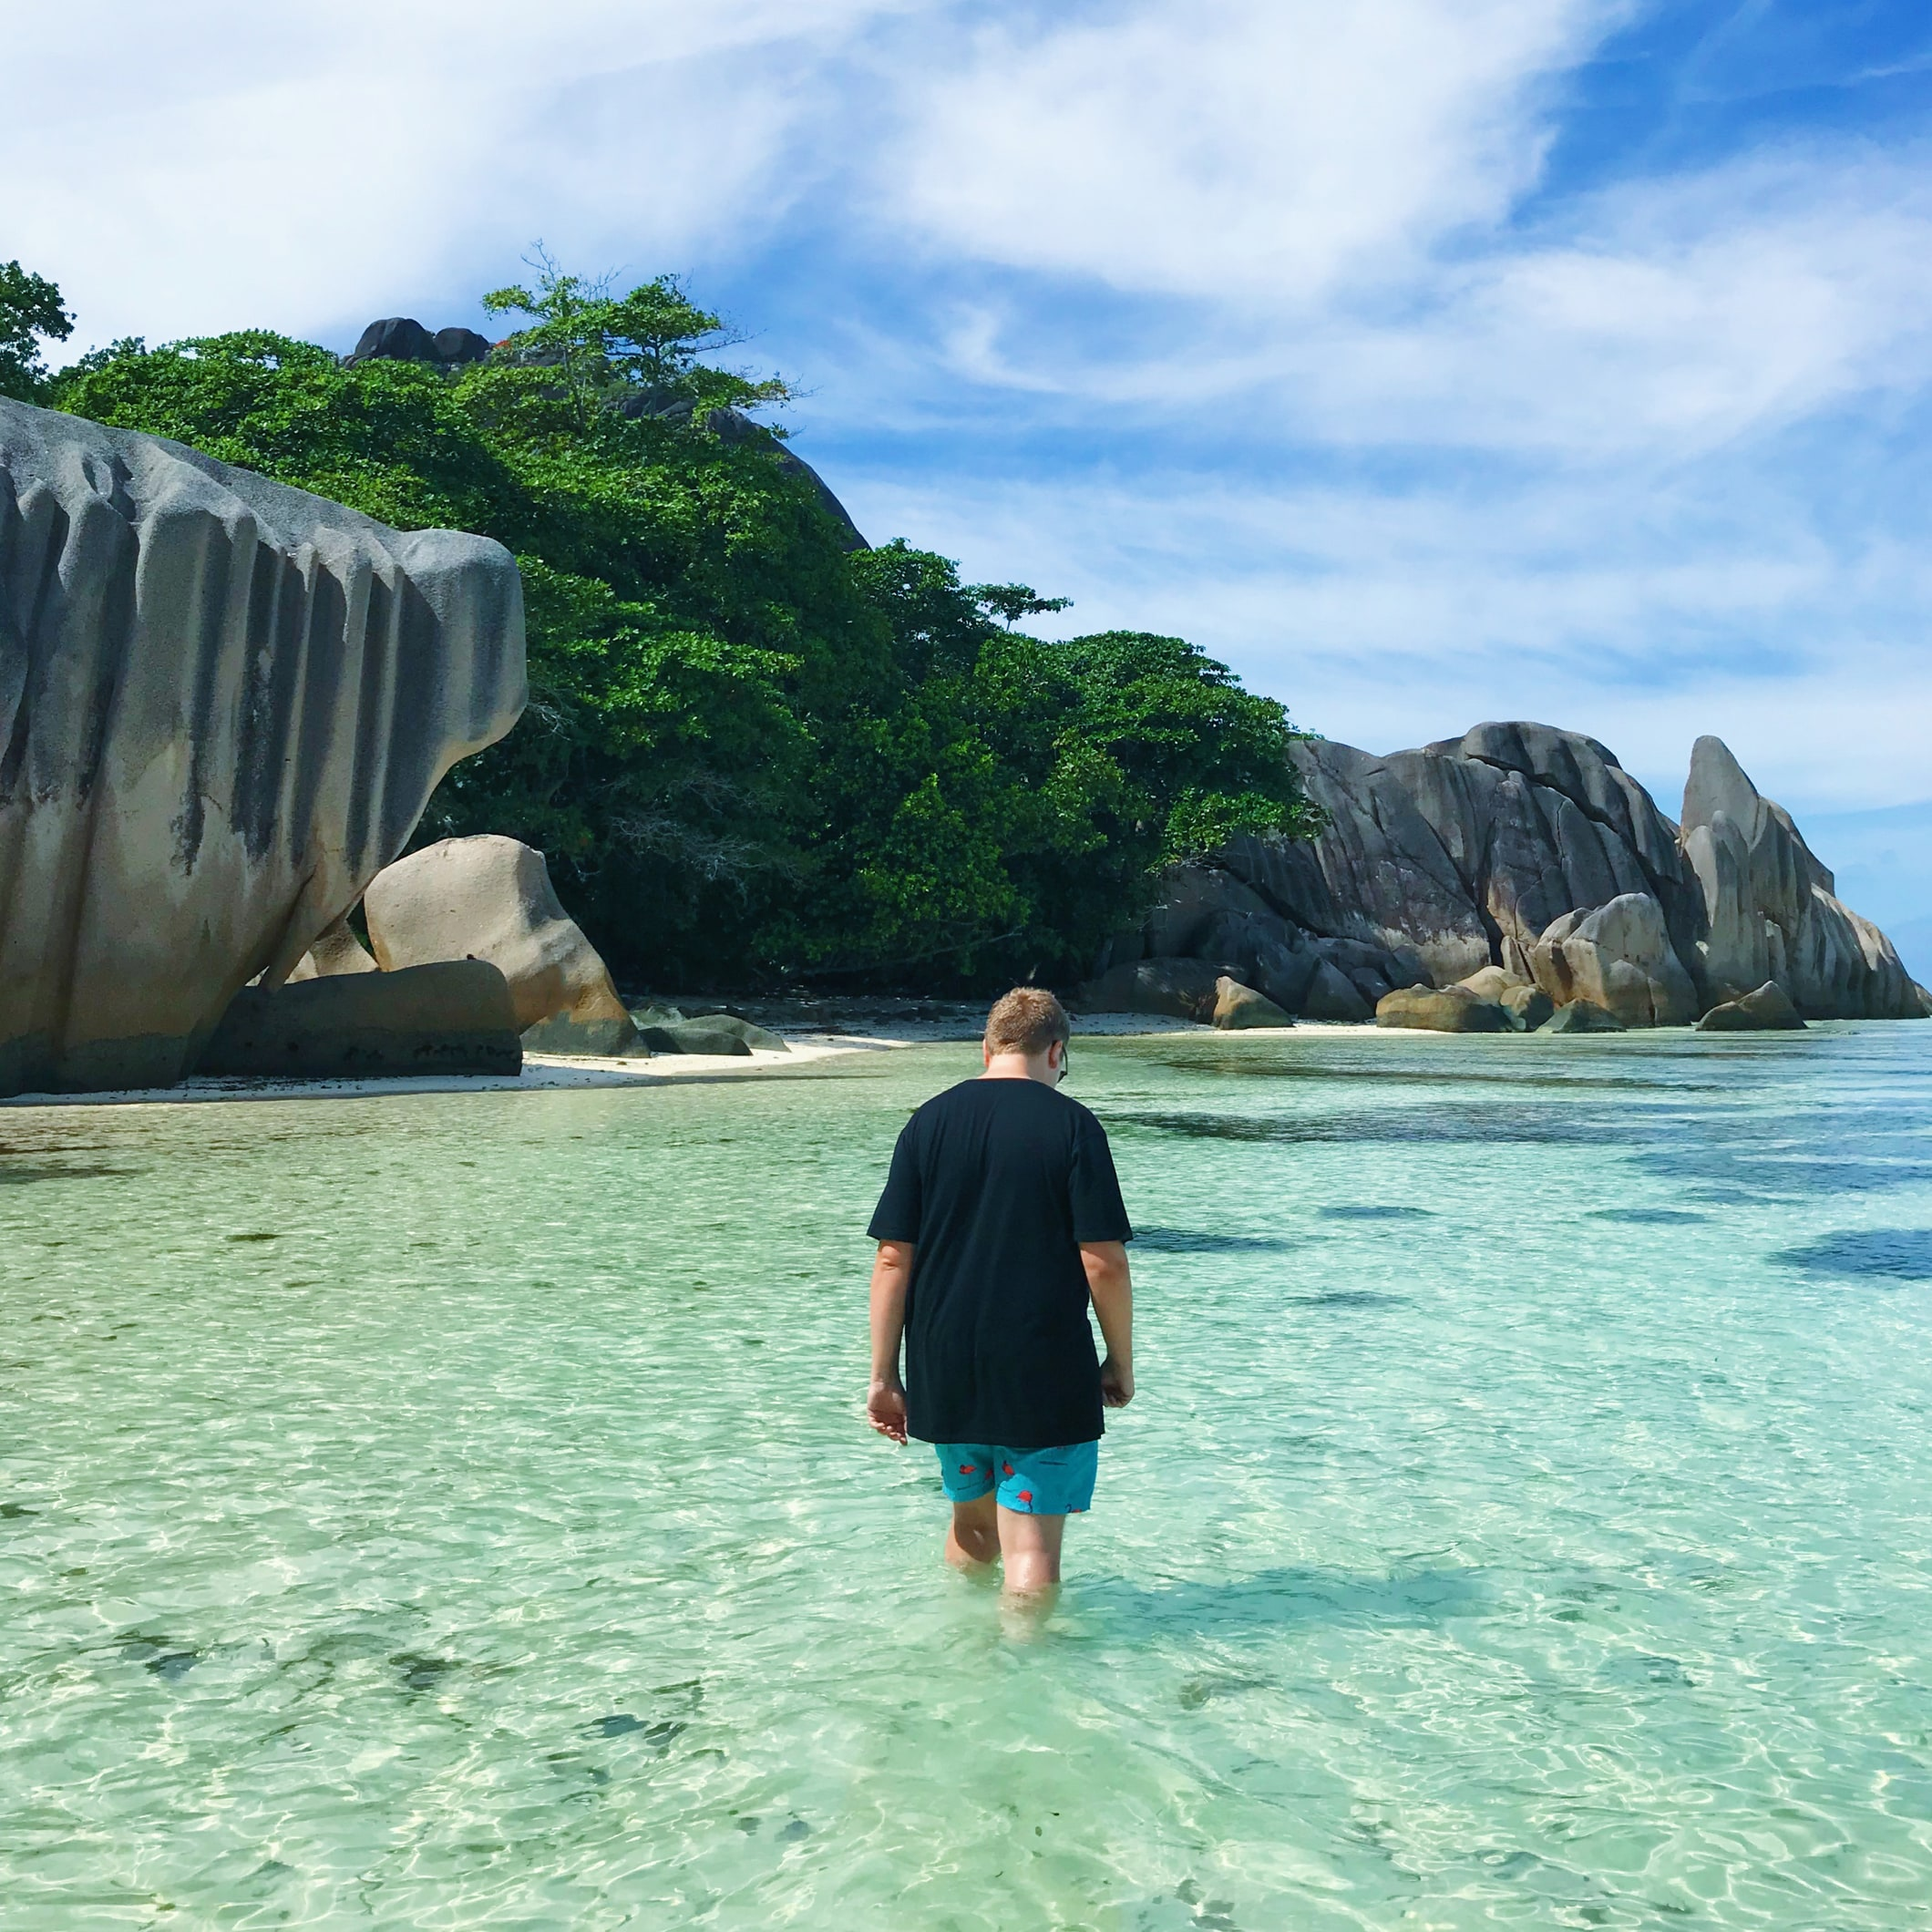 Jack Watkins paddling in the sea on an island in the Seychelles